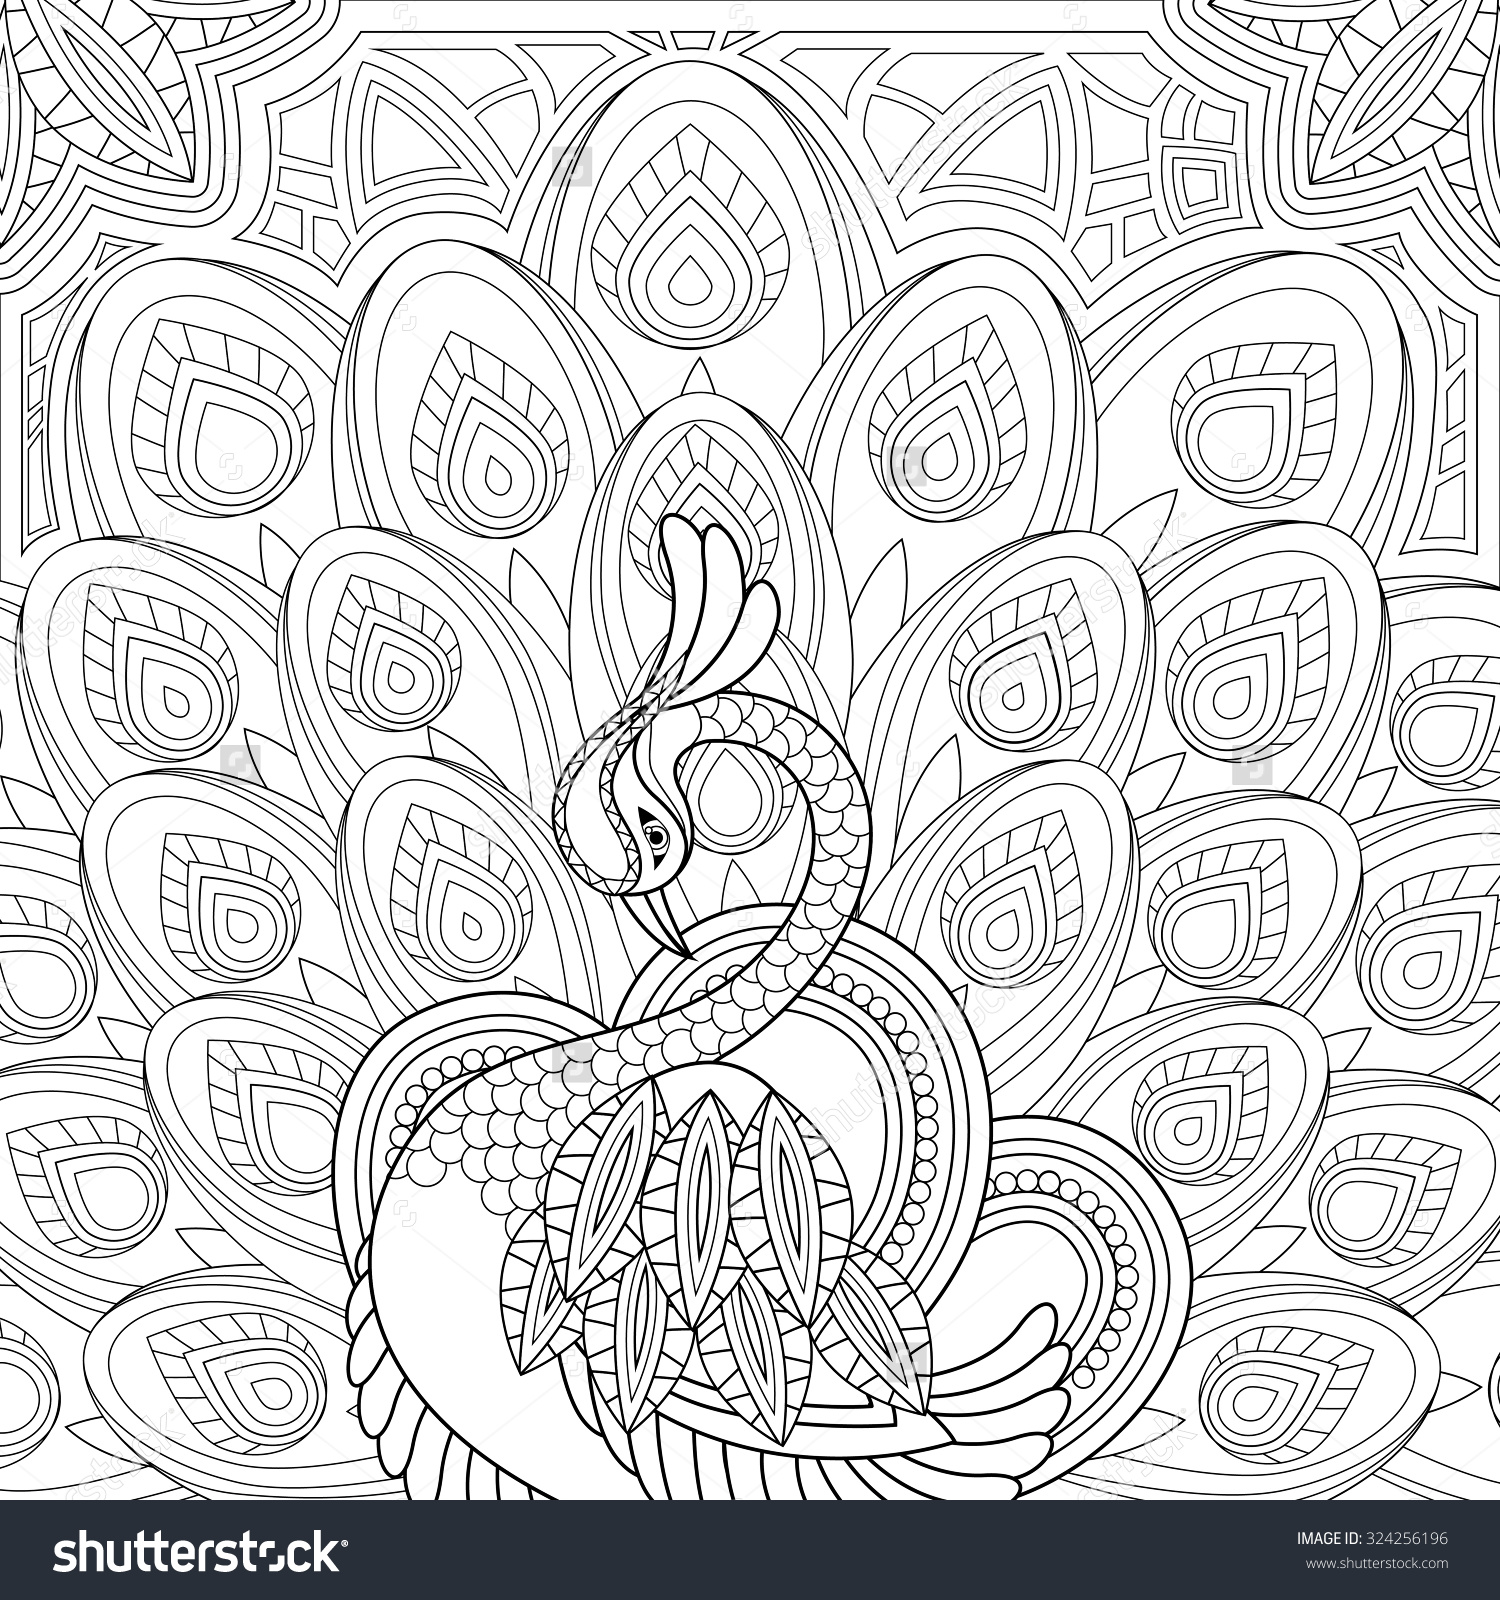 Coloring Pages Coloring Page Peacock peacock coloring page eassume com free printable pages for kids